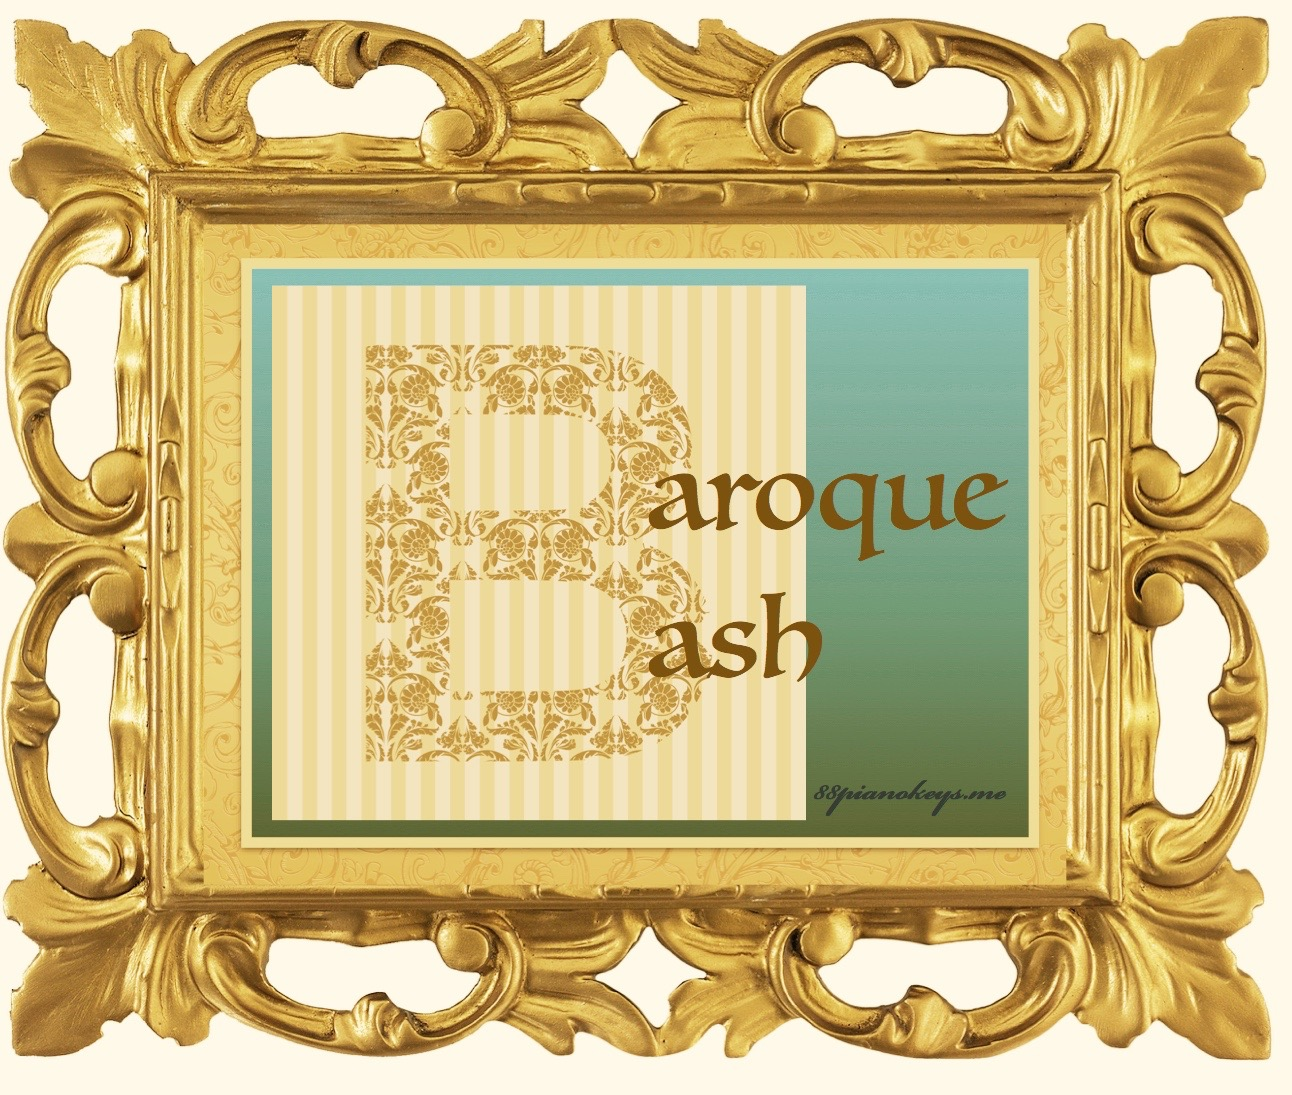 Baroque Bash 2 (1)